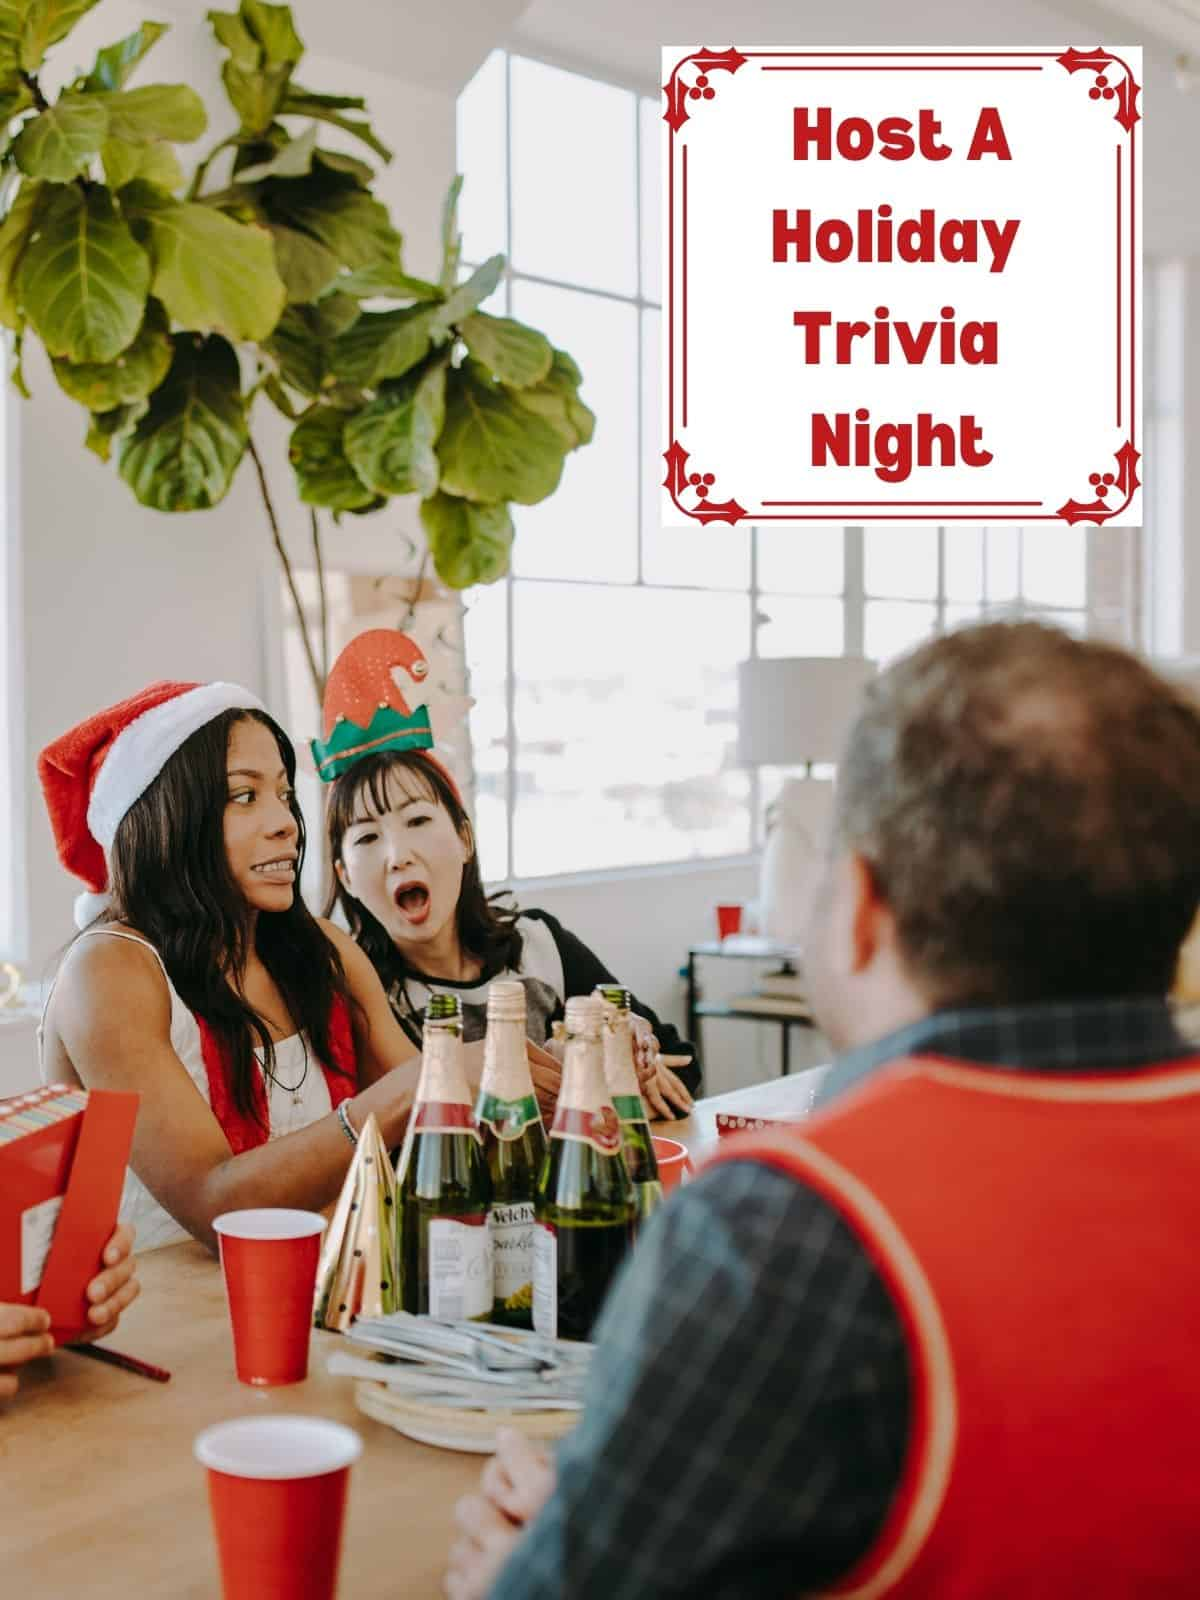 Host A Holiday Trivia Night with friends laughing